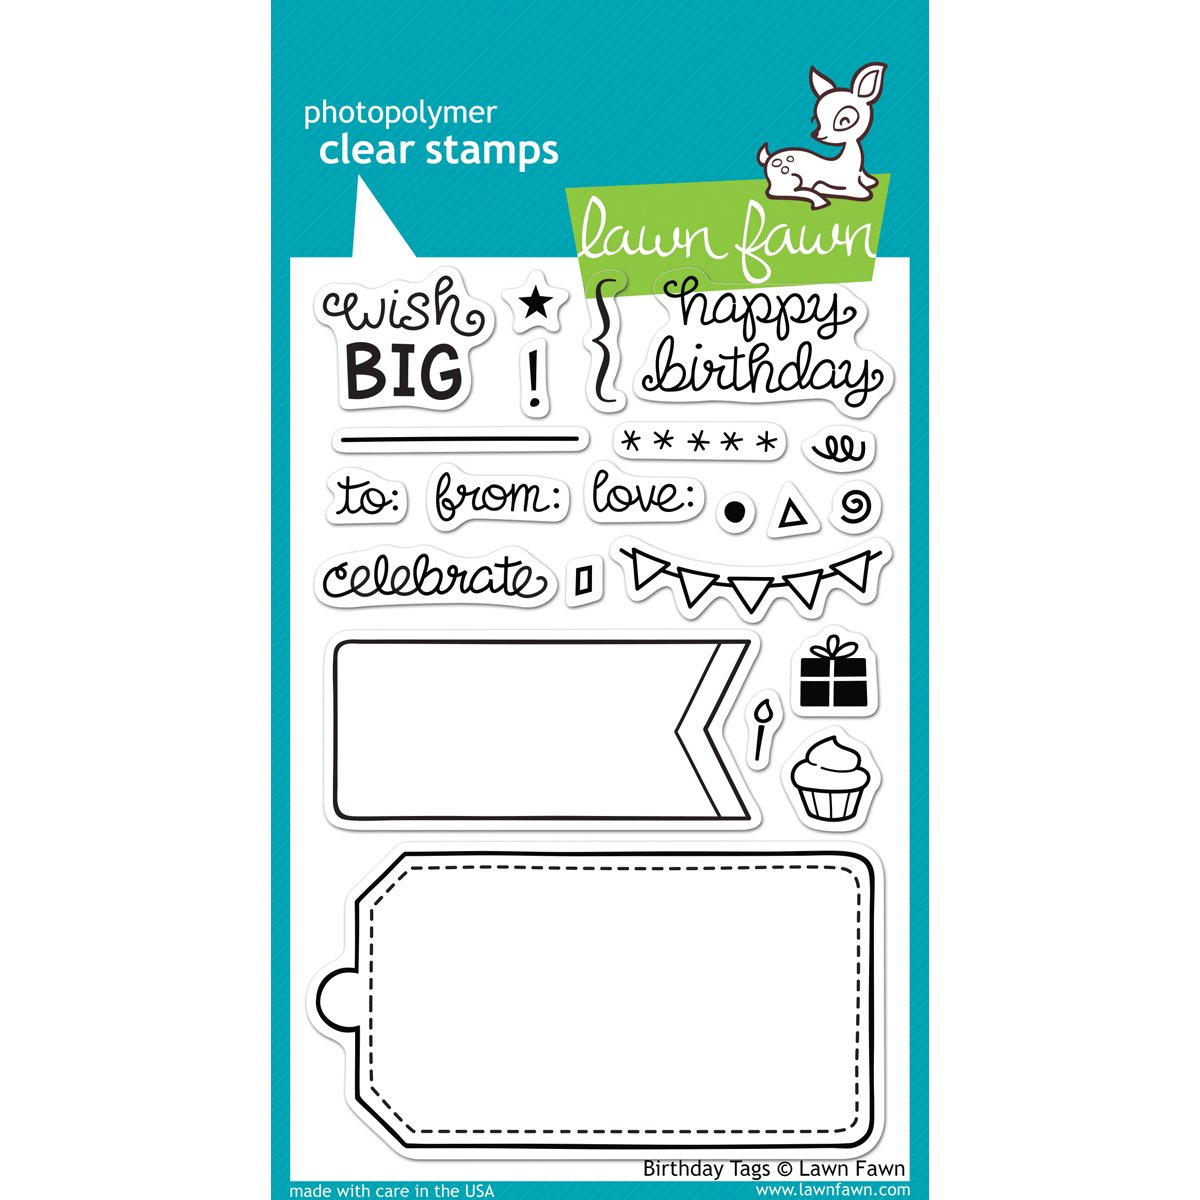 Lawn Fawn Clear Stamps - Birthday Tags #LF663 2pcs set embossing folders clear stamps card making acrylic vintage for photo scrapbooking stamp clear stamps for scrapbooking